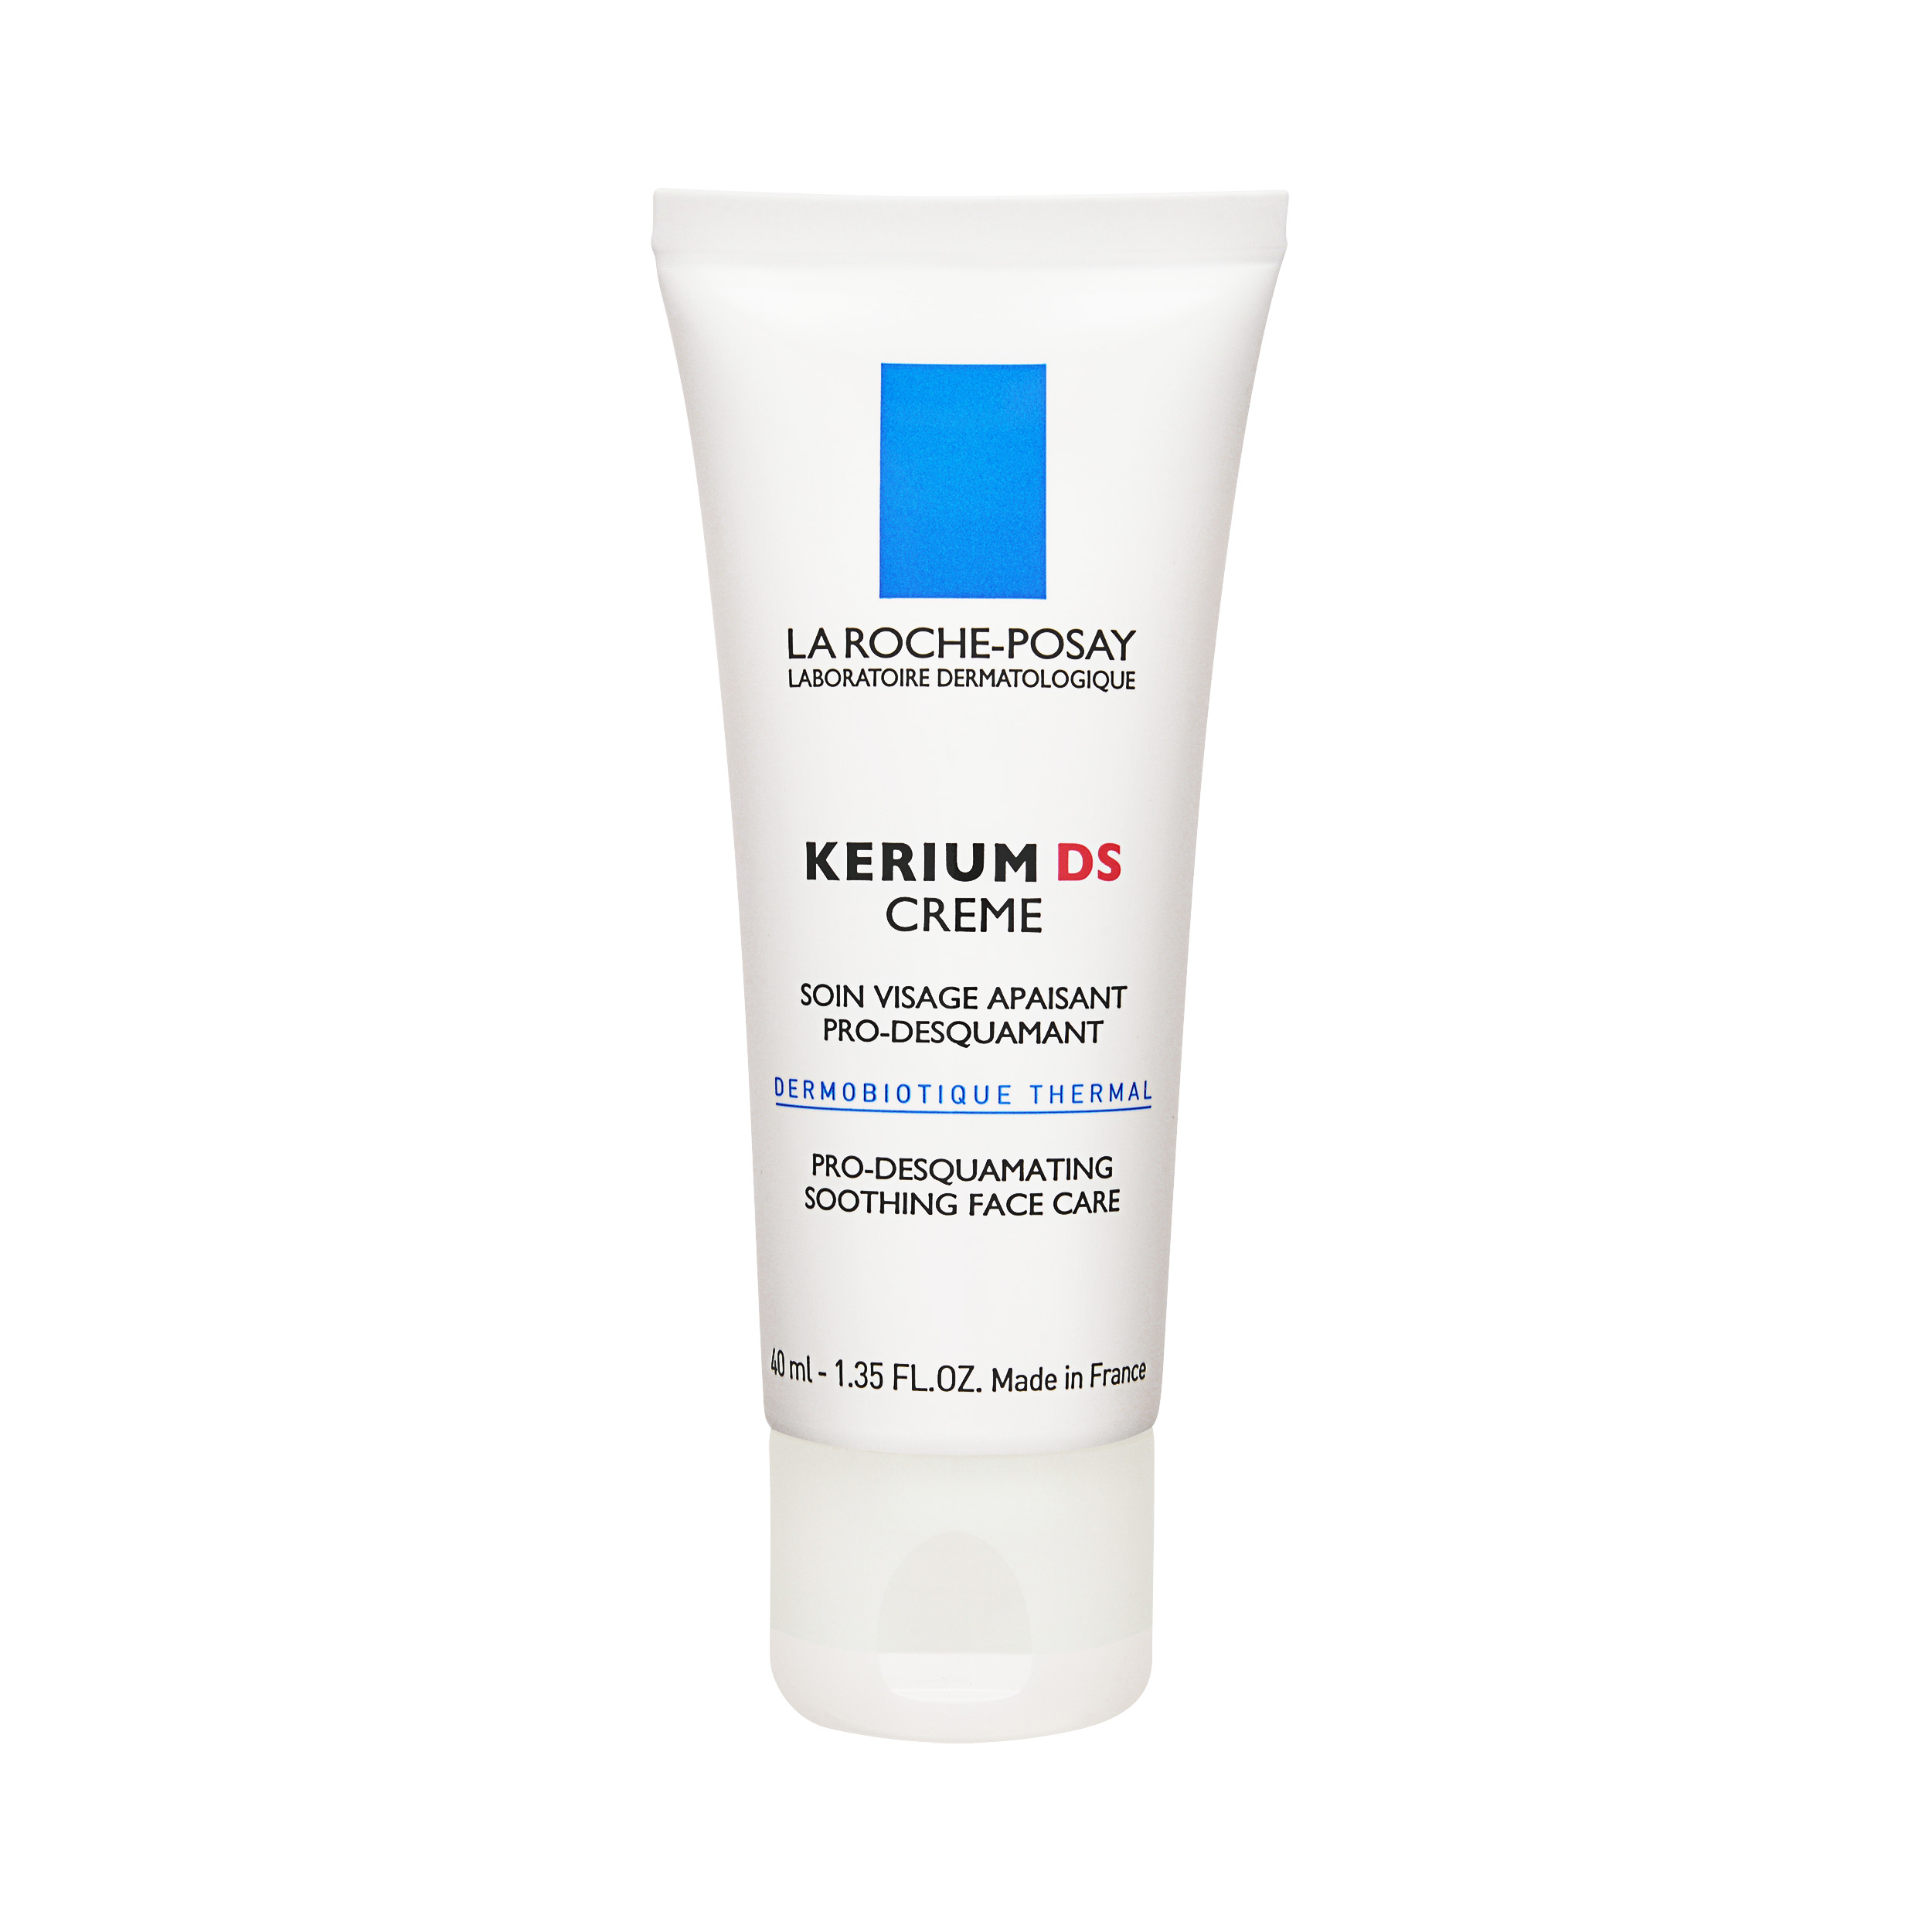 La Roche-Posay Kerium DS Pro-Desquamating Soothing Face Care 40ml,